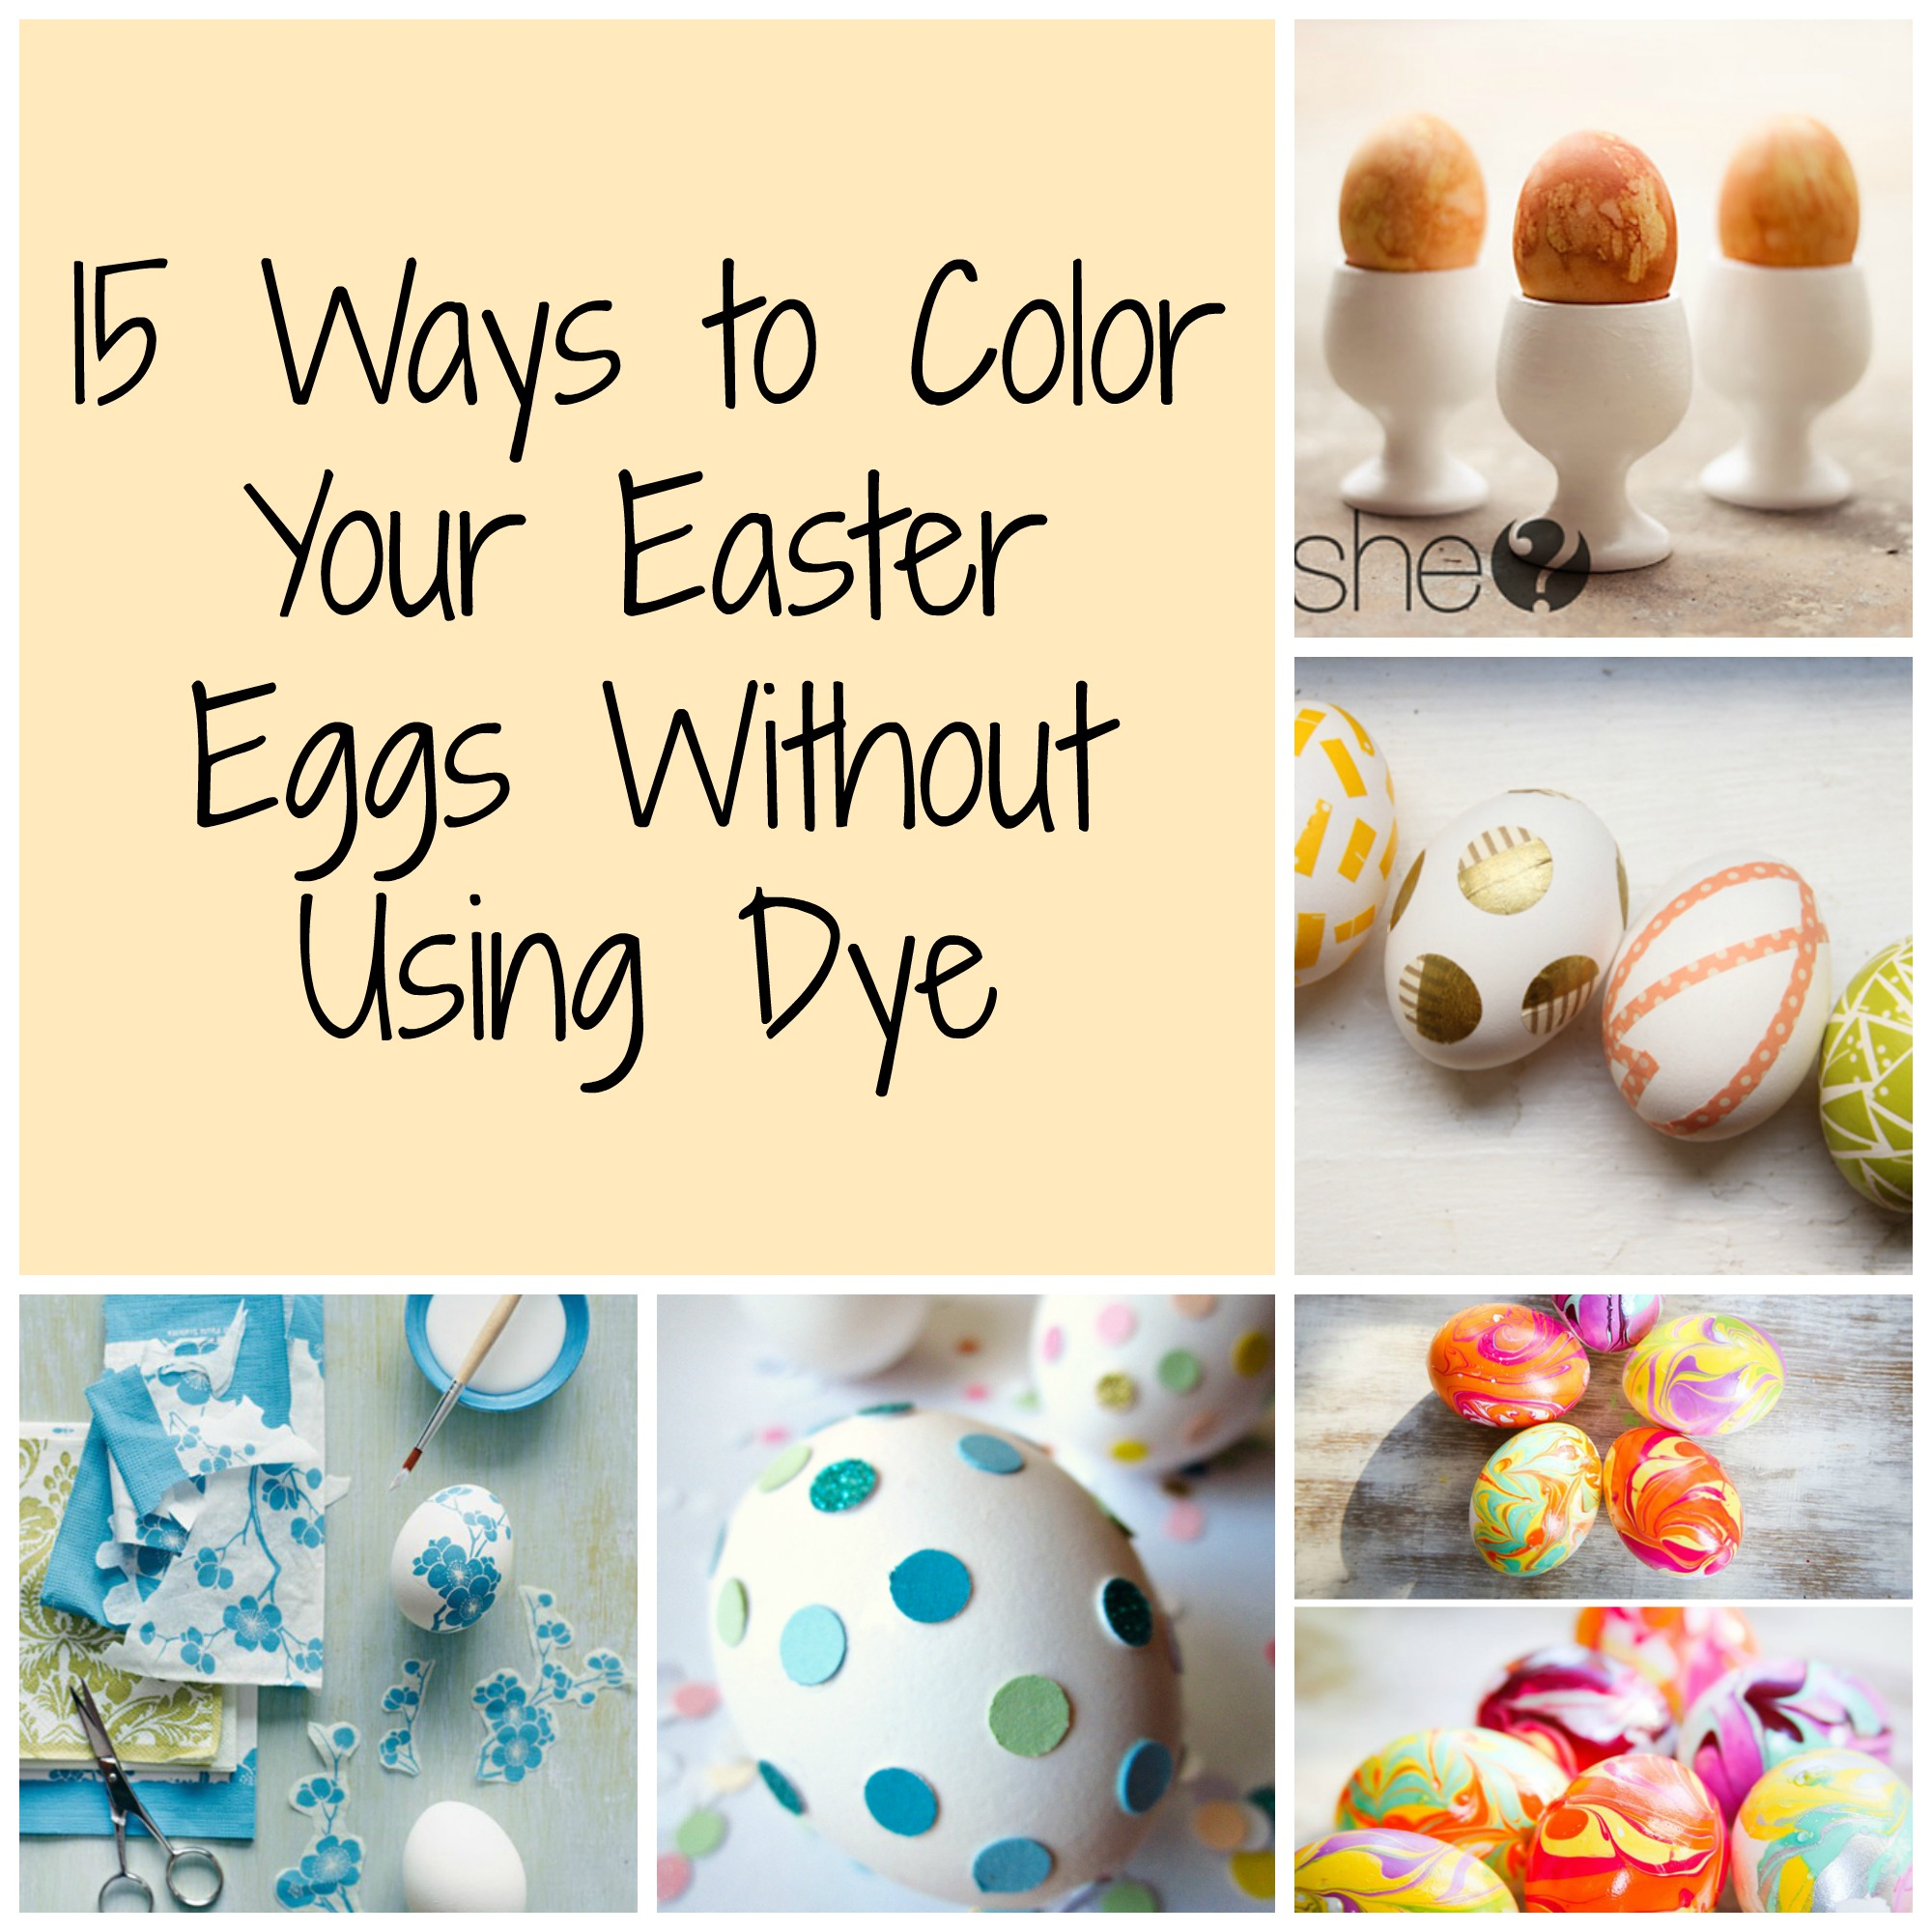 15 Ways To Color Your Easter Eggs Without Using Dye How Does She